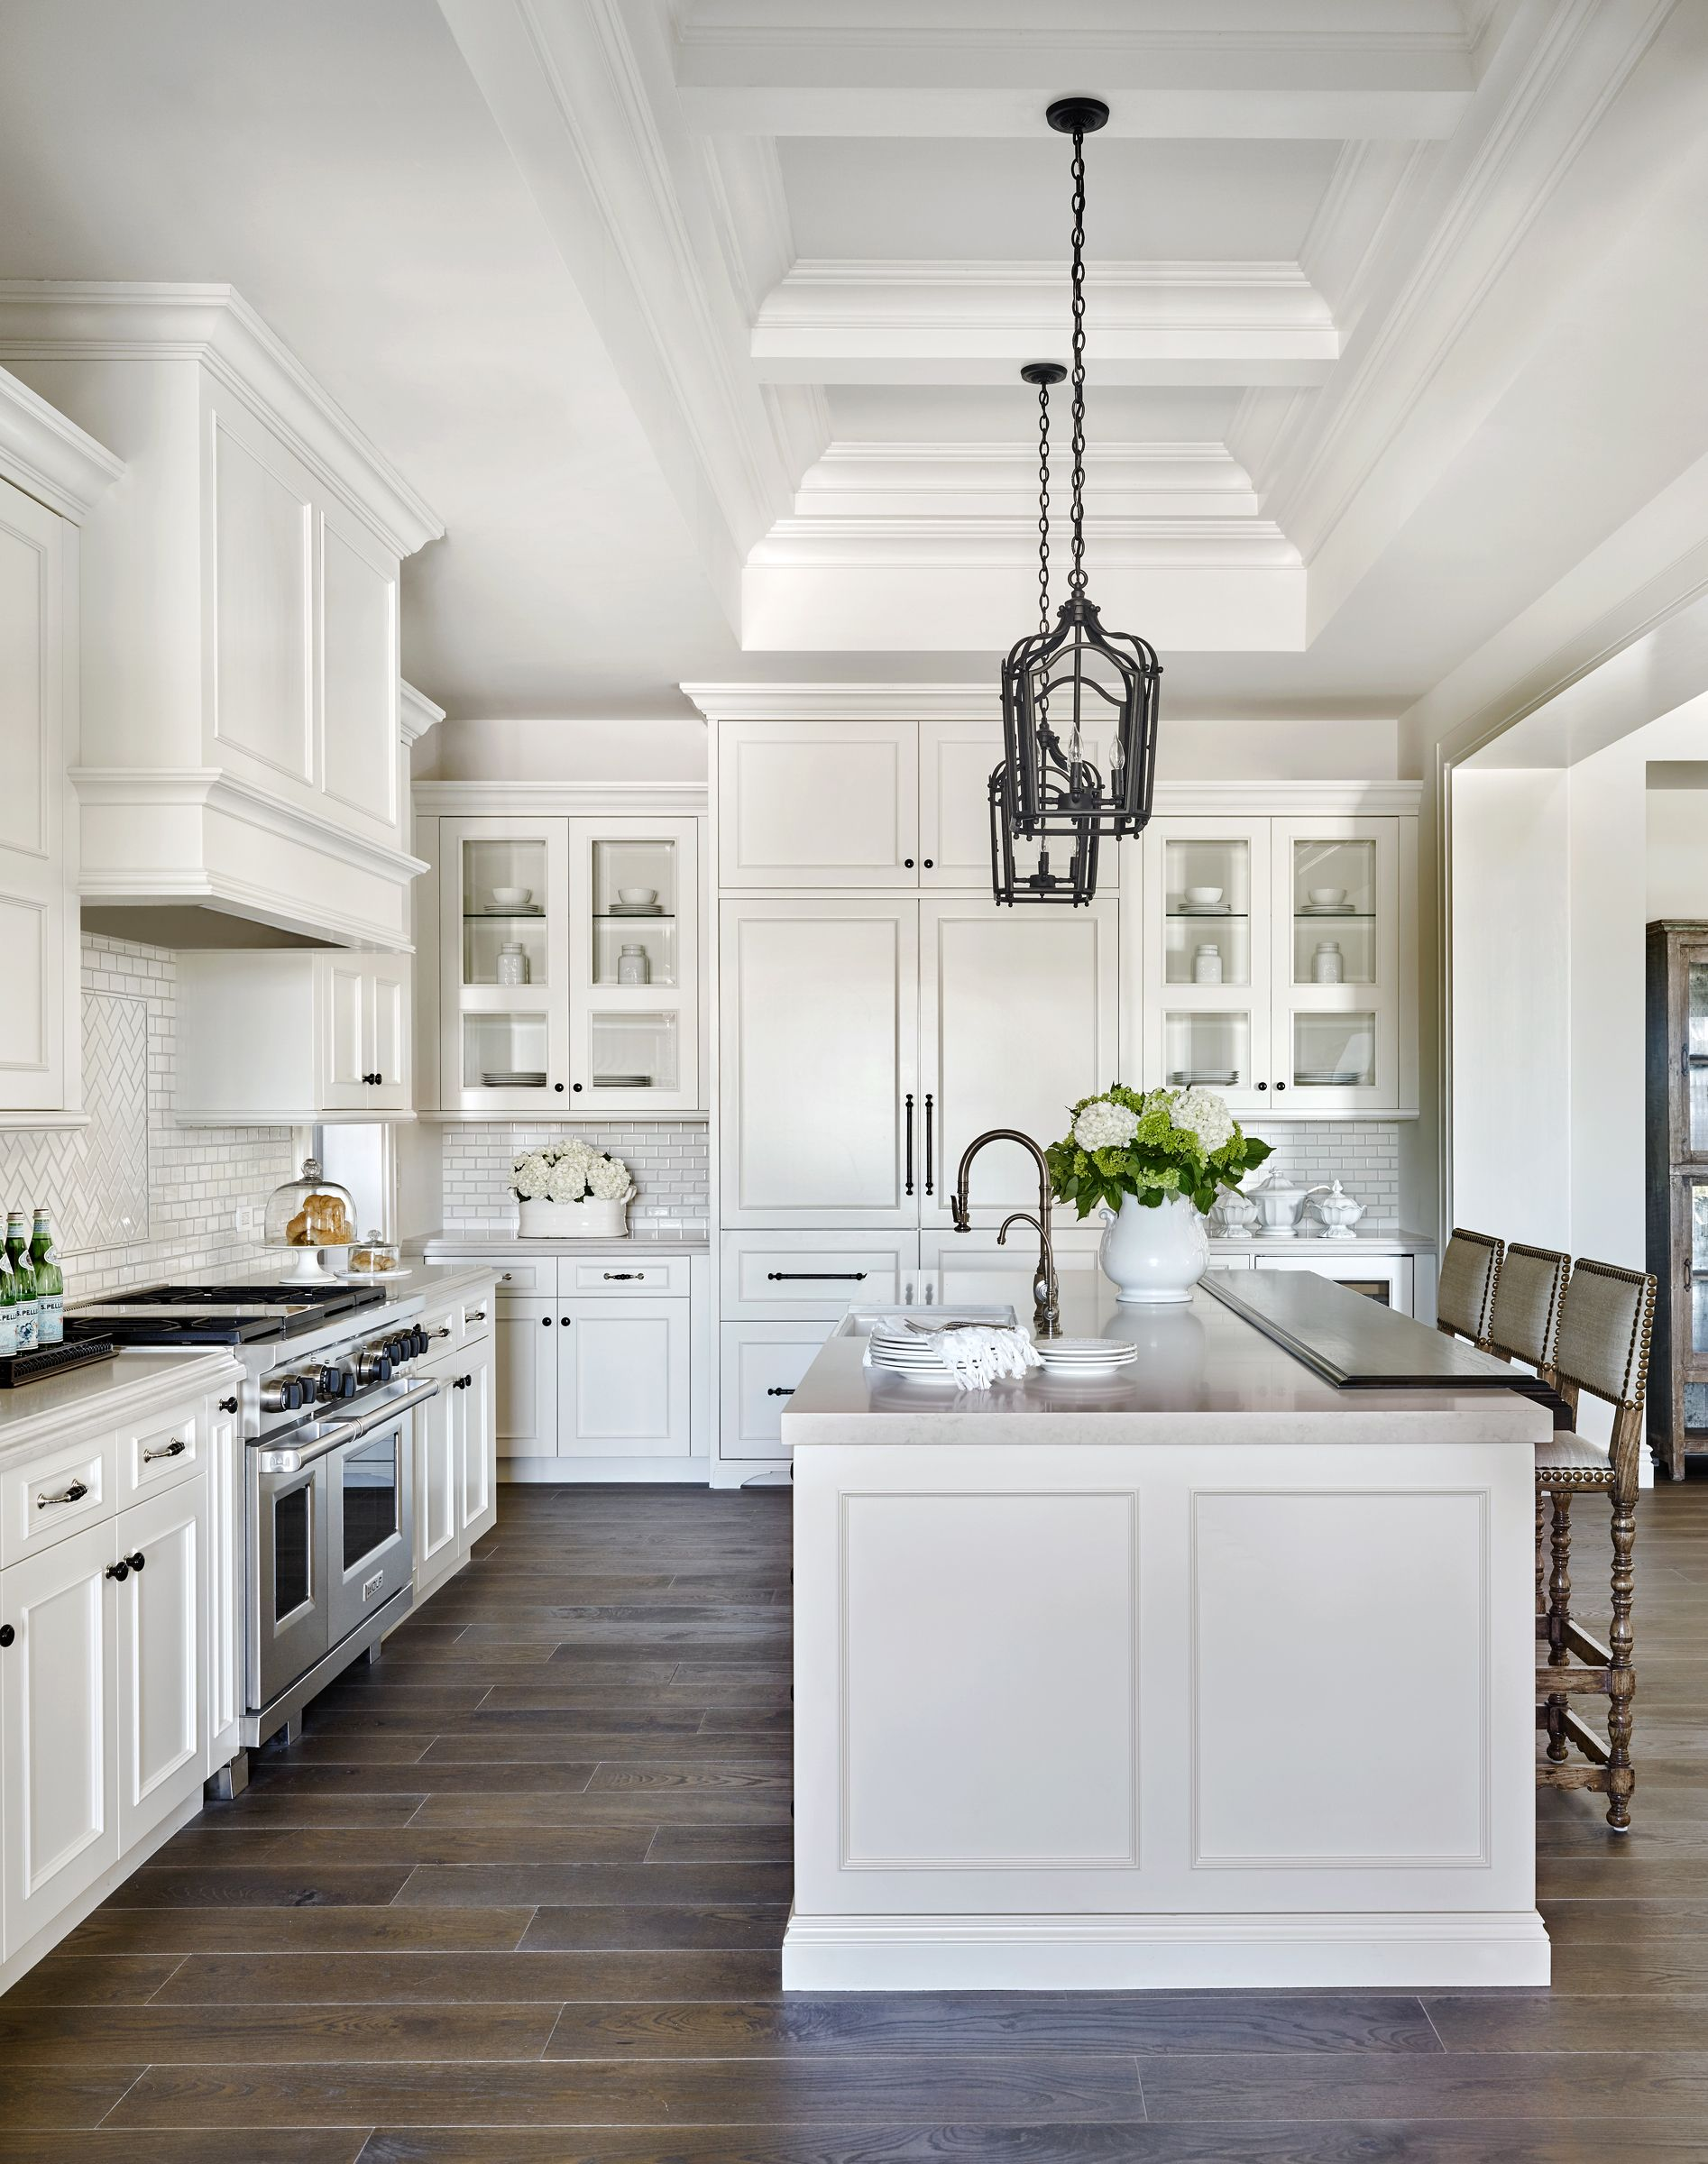 kitchen photos white cabinets. I want this exact layout of island opposite stove  Whisper Rock Traditional Kitchen With Hardwood FloorsKitchen Cabinets And Countertops White